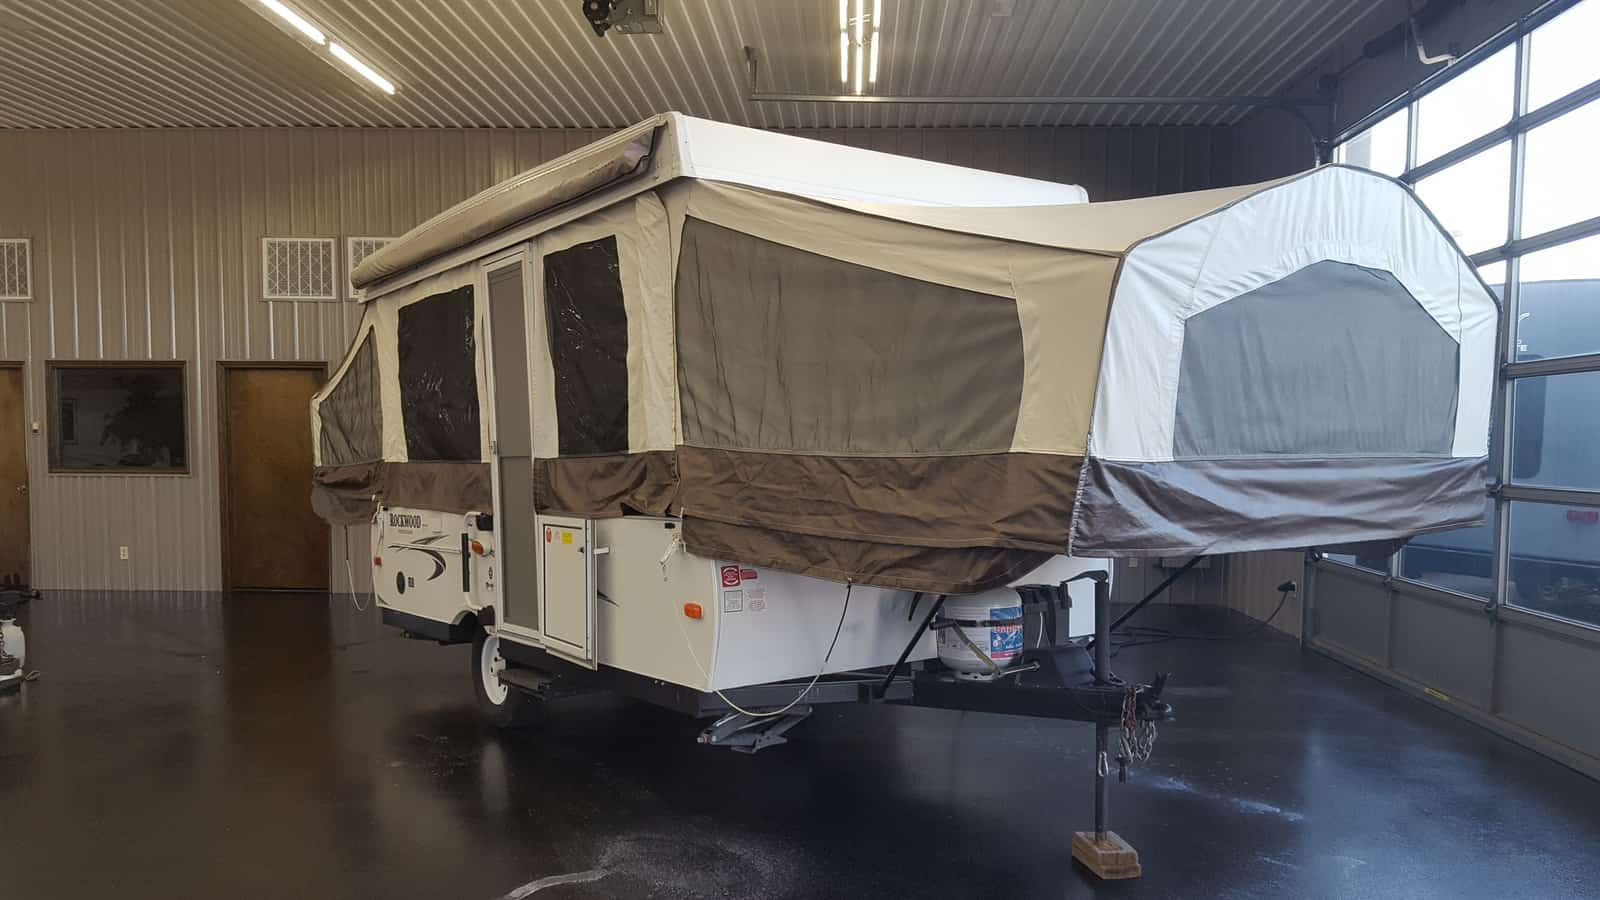 USED 2014 Forest River ROCKWOOD 2270 - American RV